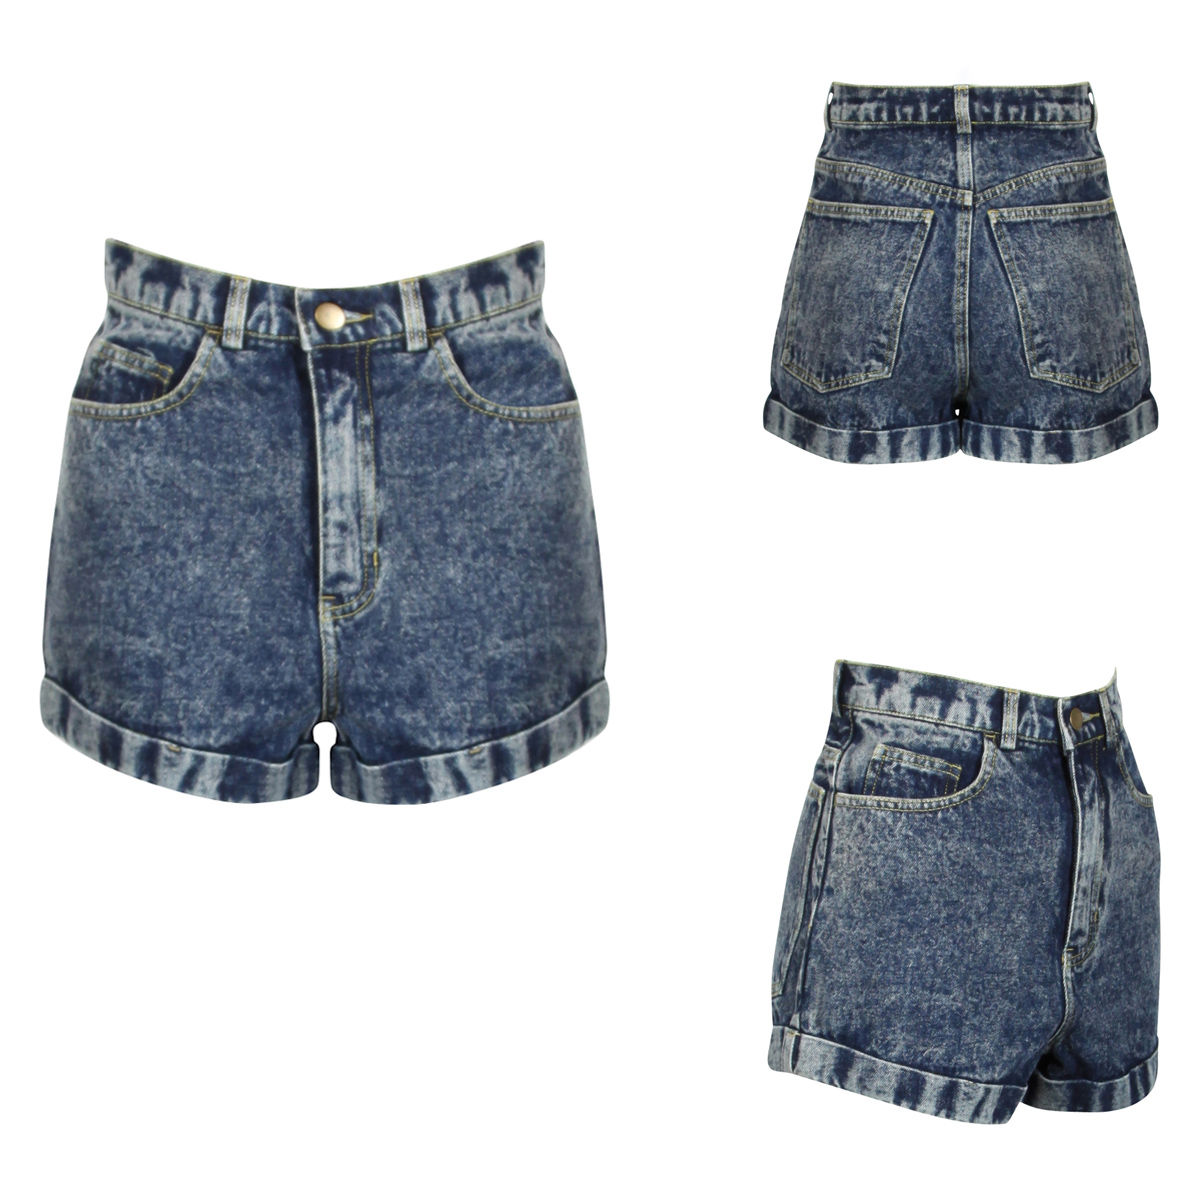 NEW WOMENS GLAMOROUS BLUE DENIM HIGHWAISTED ACID WASH DISTRESSED LADIES SHORTS Preview